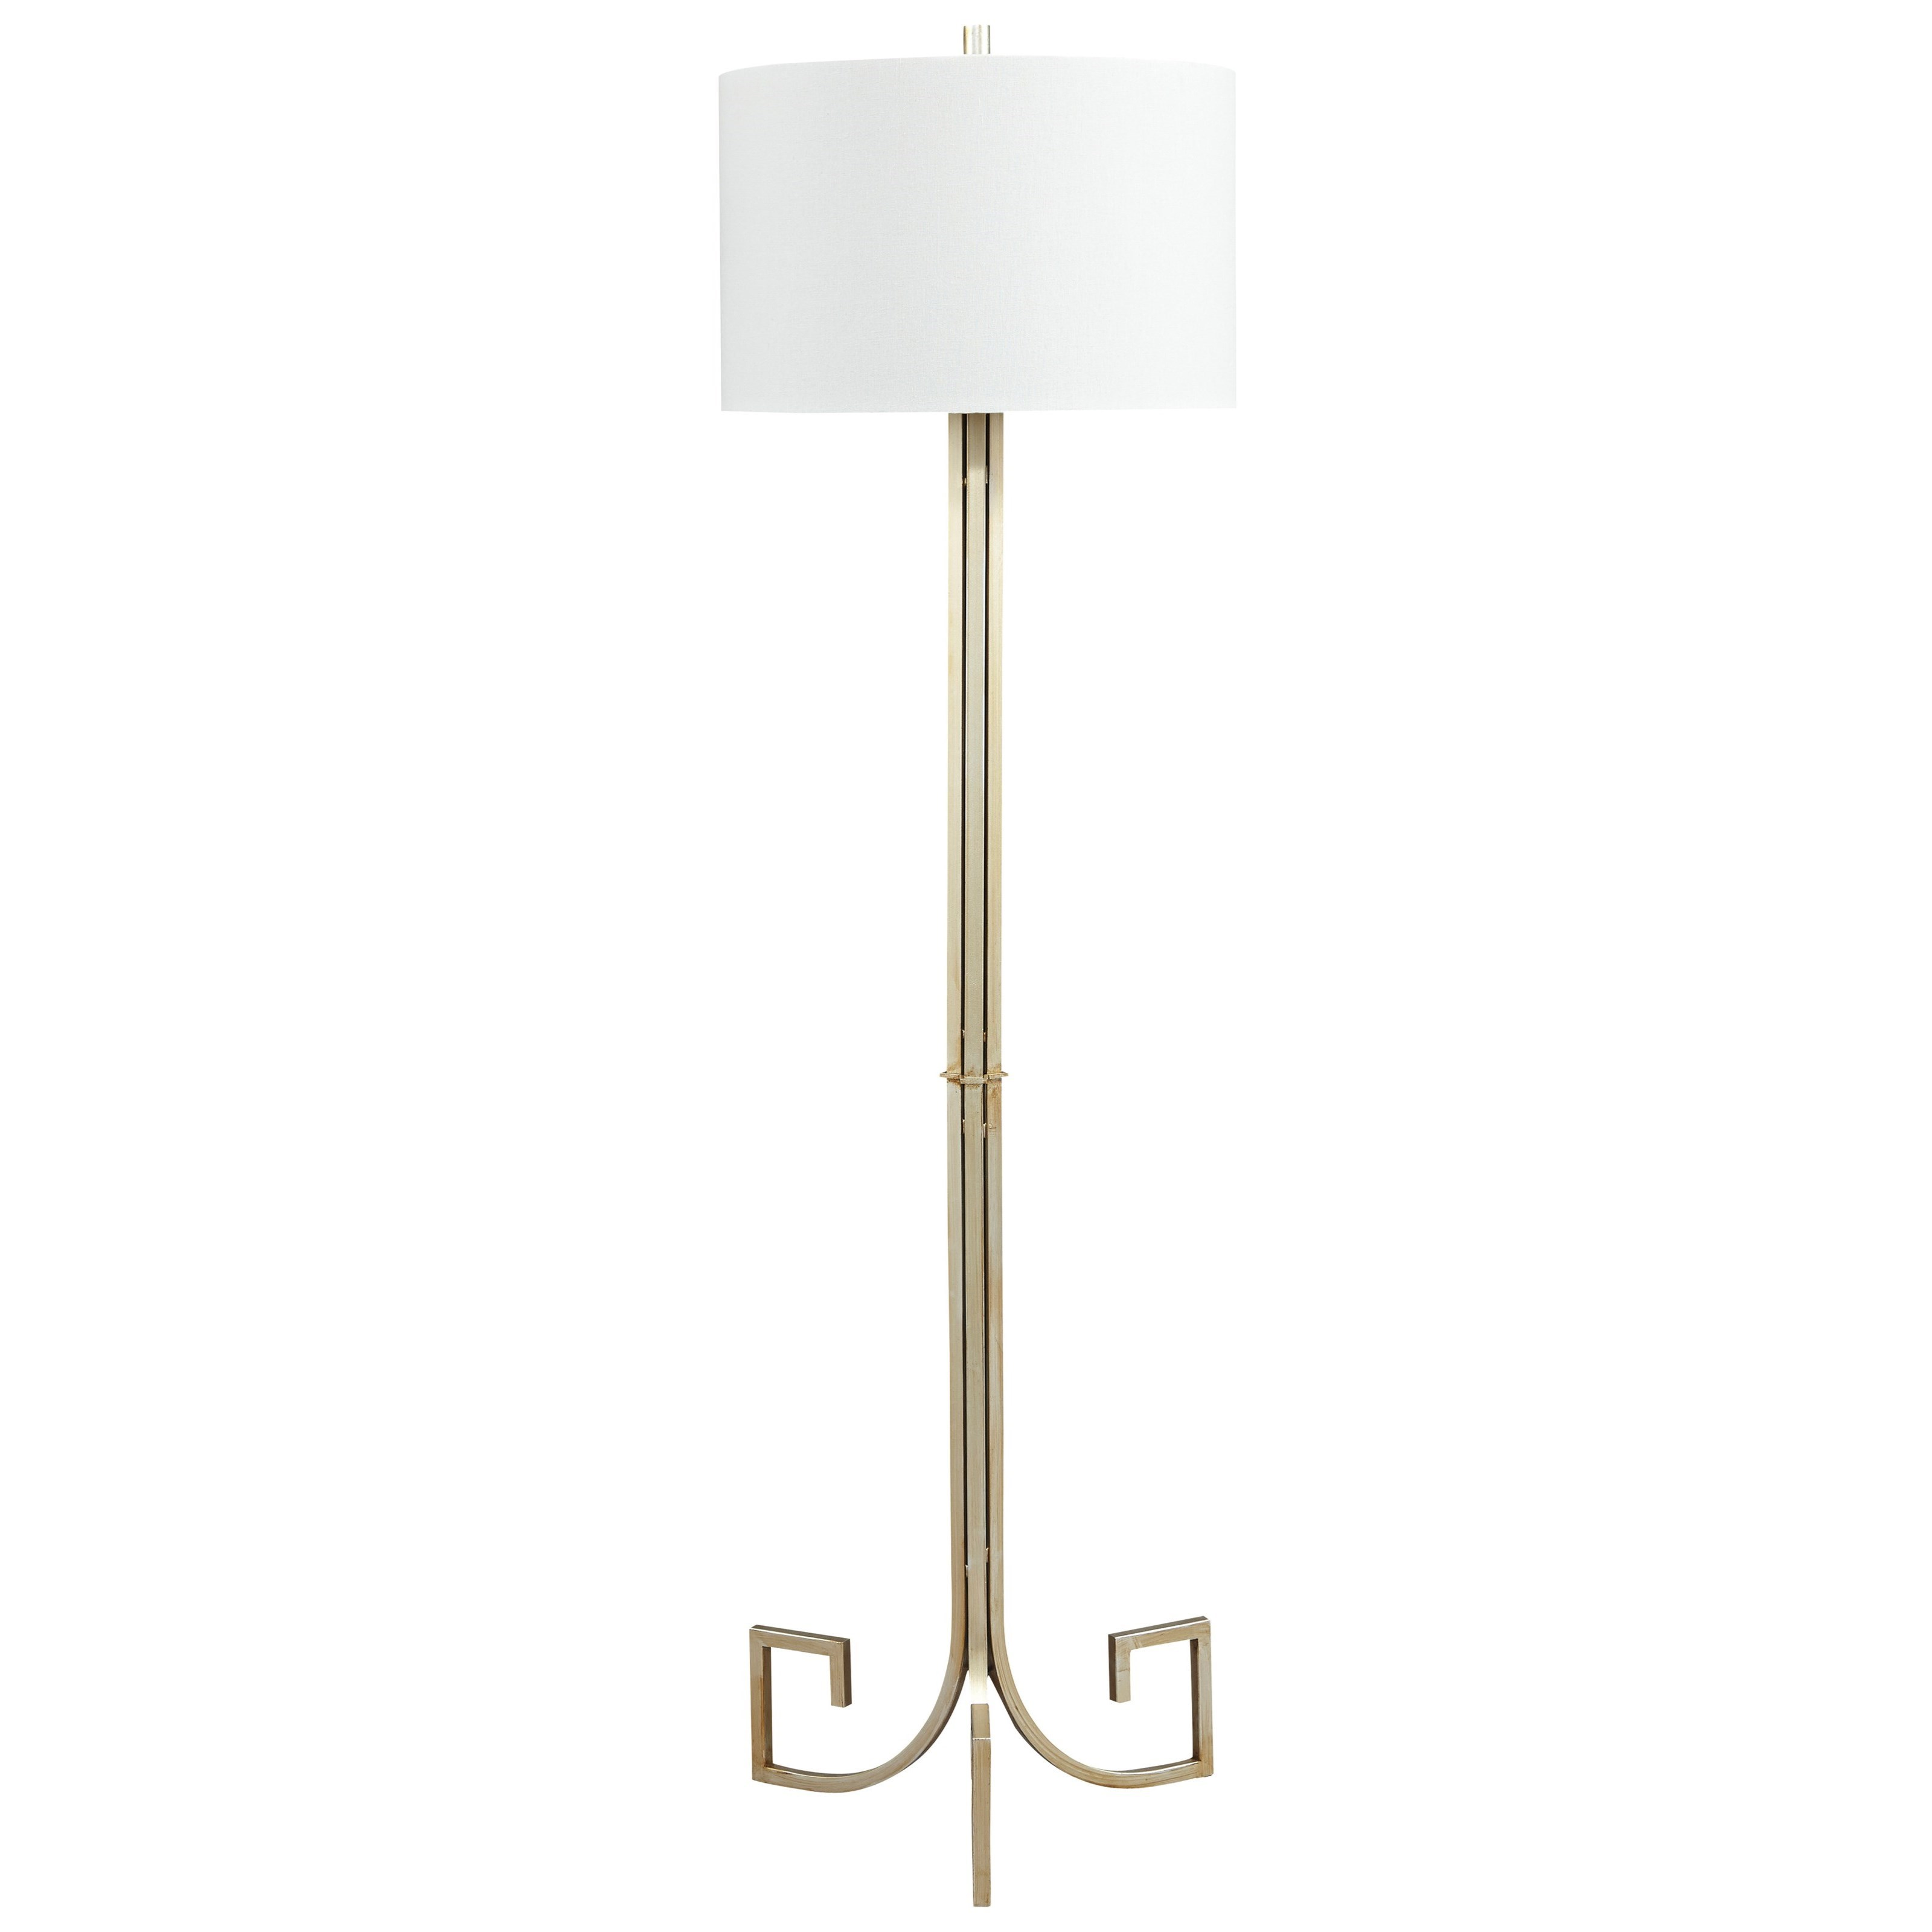 Signature Design by Ashley Lamps - Contemporary Jankin Champagne Finish Metal Floor Lamp - Item Number: L207121